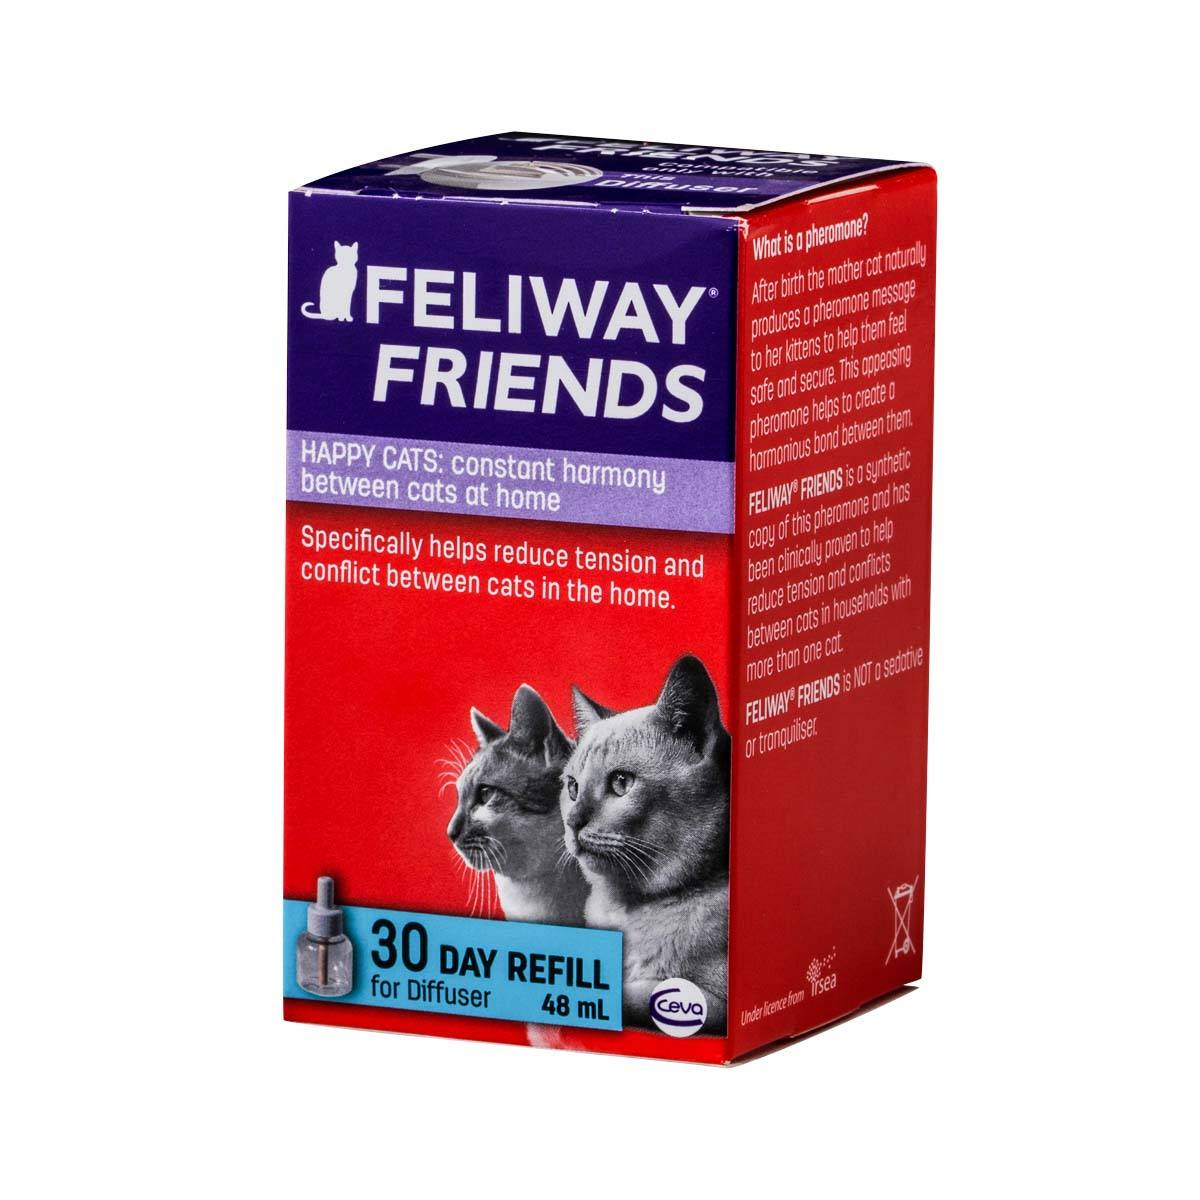 Stressed Cat? Shop Our Low Cost Range and Save - Pet Drugs